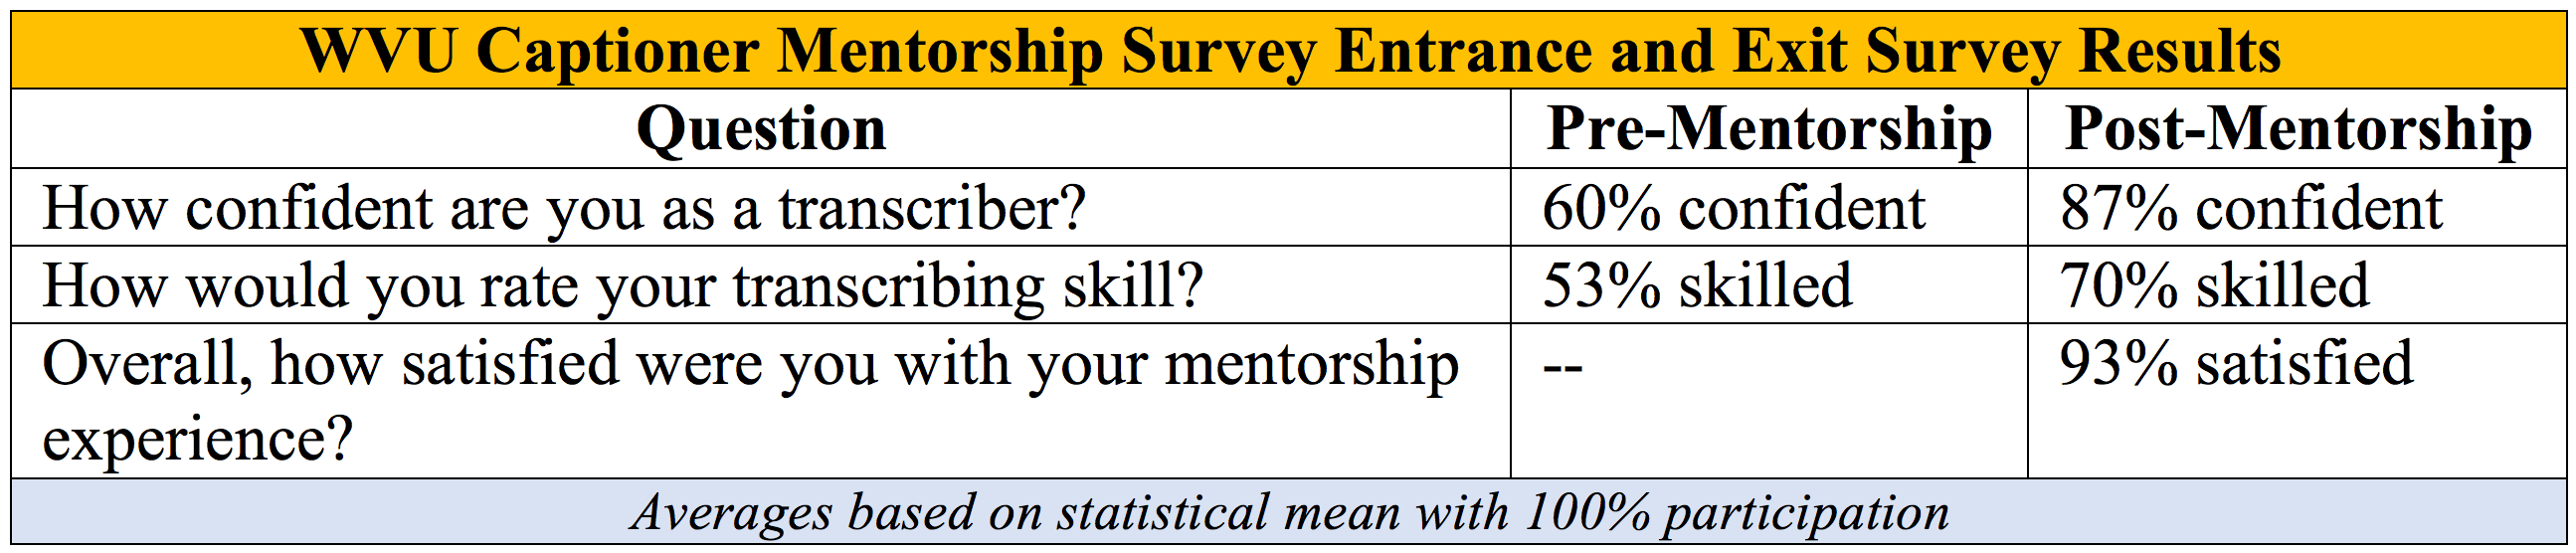 Table: WVU Captioner Mentorship Survey Entrance and Exit Survey Results